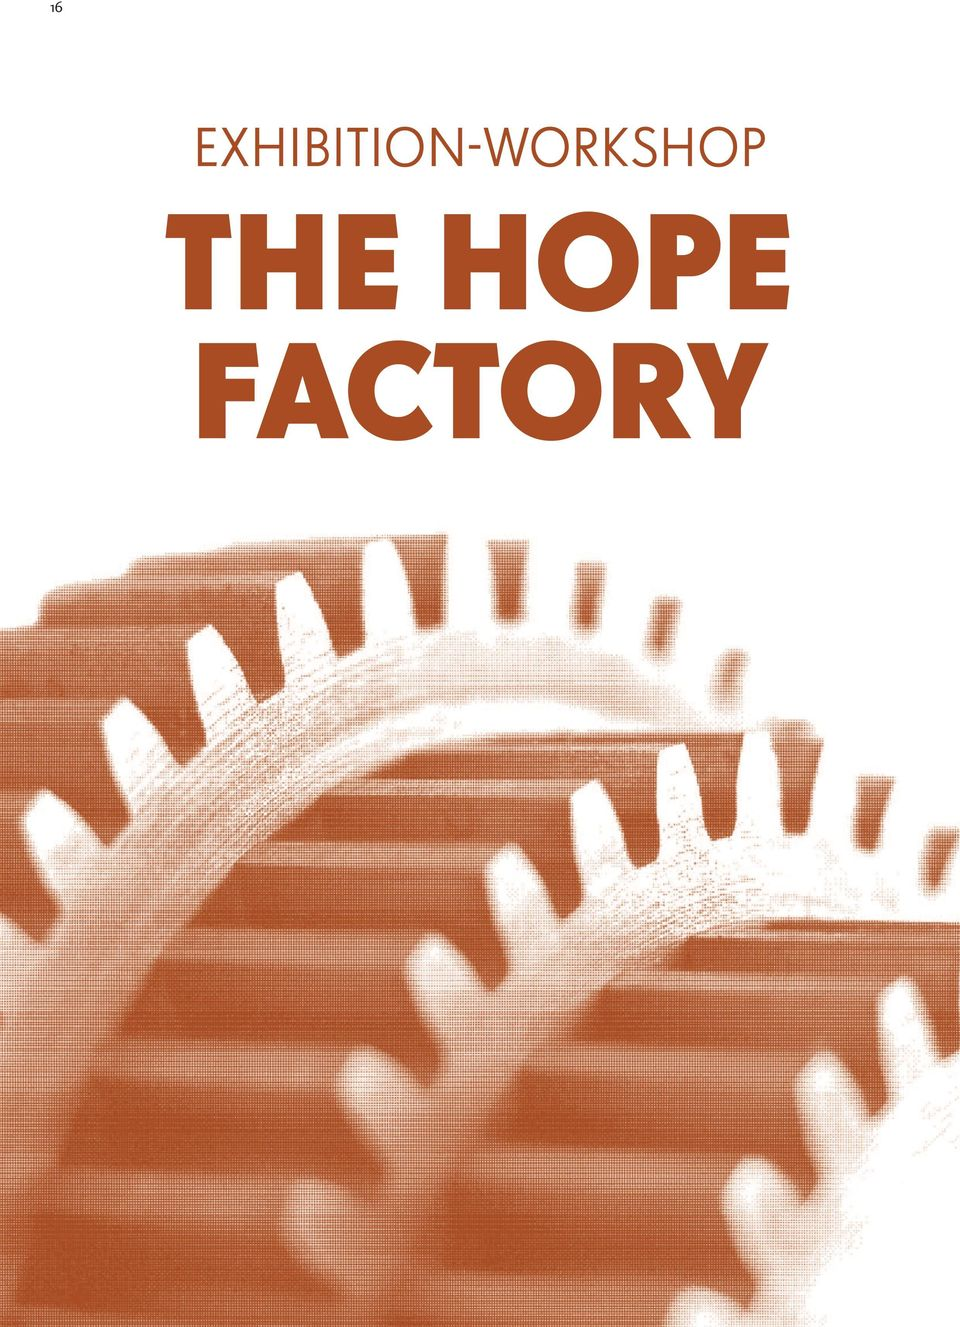 THE HOPE FACTORy offers interactive learning about the Olympic values of striving for excellence, demonstrating respect and celebrating friendship.